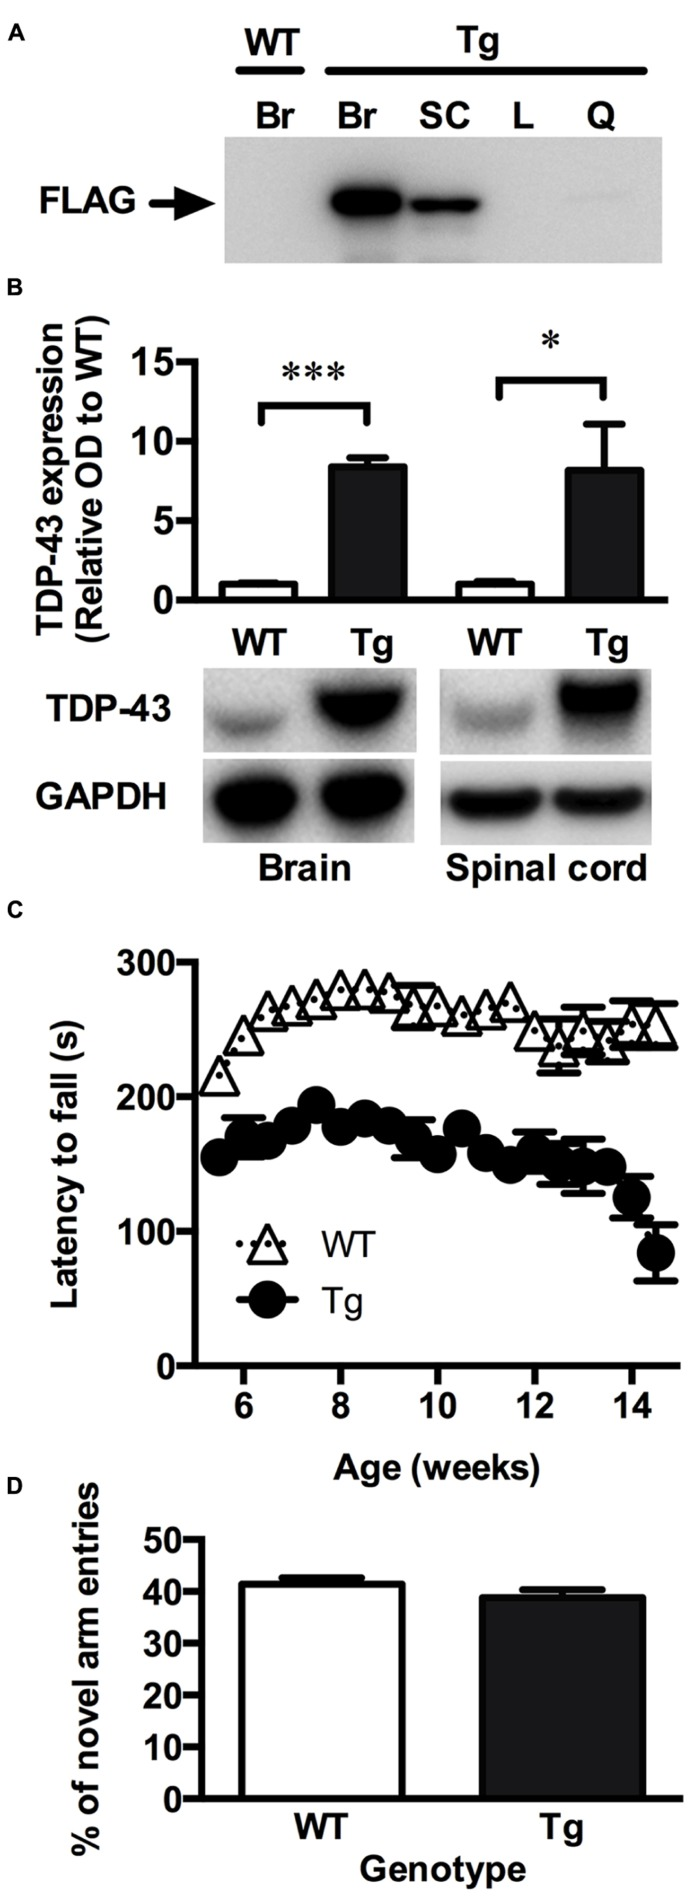 TDP-43 A315T mice express mutant TDP-43 in the CNS and exhibit a locomotor impairment. (A) Representative western blot showing the absence of mutant FLAG-tagged TDP-43 (FLAG) expression in the brain of wild-type (WT) mice and the expression of FLAG-tagged TDP-43 in the brain (Br), and spinal cord (SC) but not liver (L) and quadriceps muscle (Q) of transgenic TDP-43 A315T (Tg) mice. (B) Western blot analysis show a significant overexpression of total TDP-43 in the brain and spinal cord of Tg mice ( n = 9) compared to WT ( n = 9). *** p